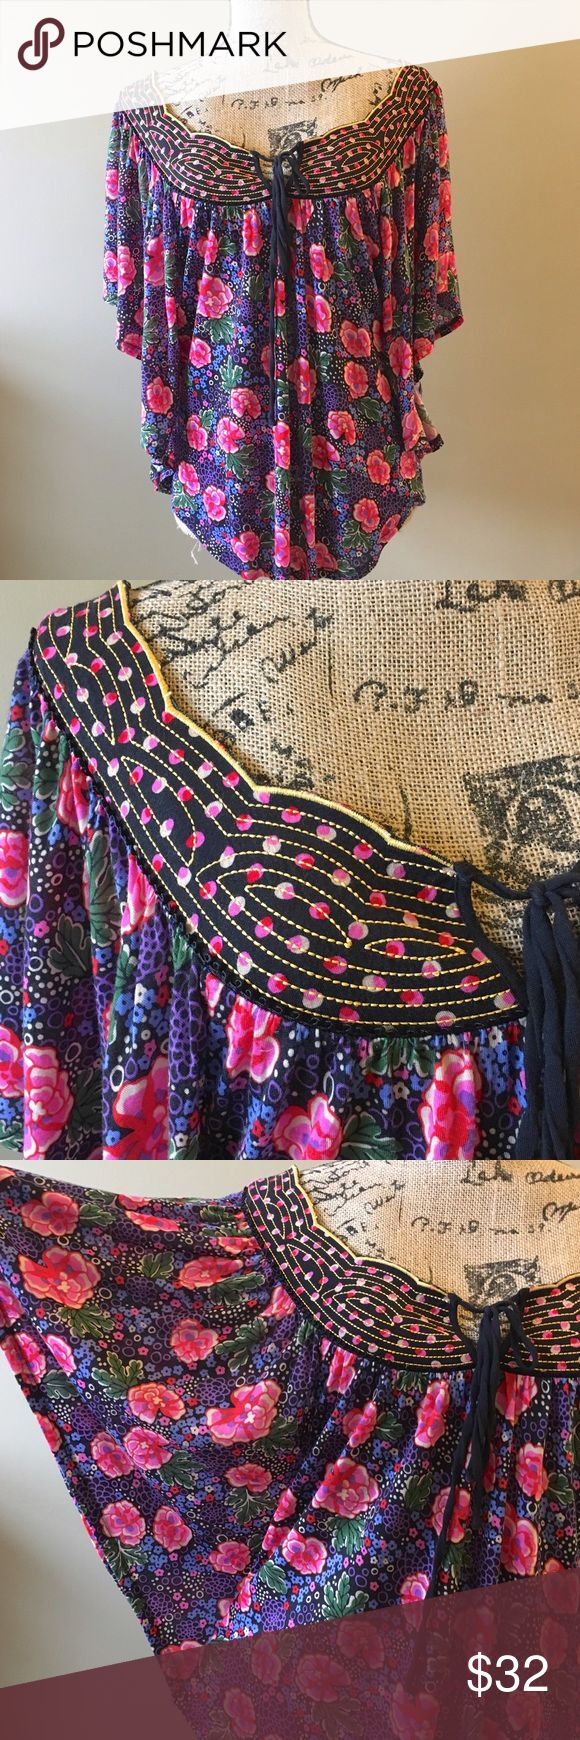 """Anthropologie batwing embroidered floral top Perfect condition, zero signs of wear. Ric rac for Anthropologie. Busy measures approx 19"""" when laid flat. Length at the longest point is 37"""". Oversized and very roomy. Will fit up to a large. Add this to a bundle to save 15%. Anthropologie Tops Tunics"""